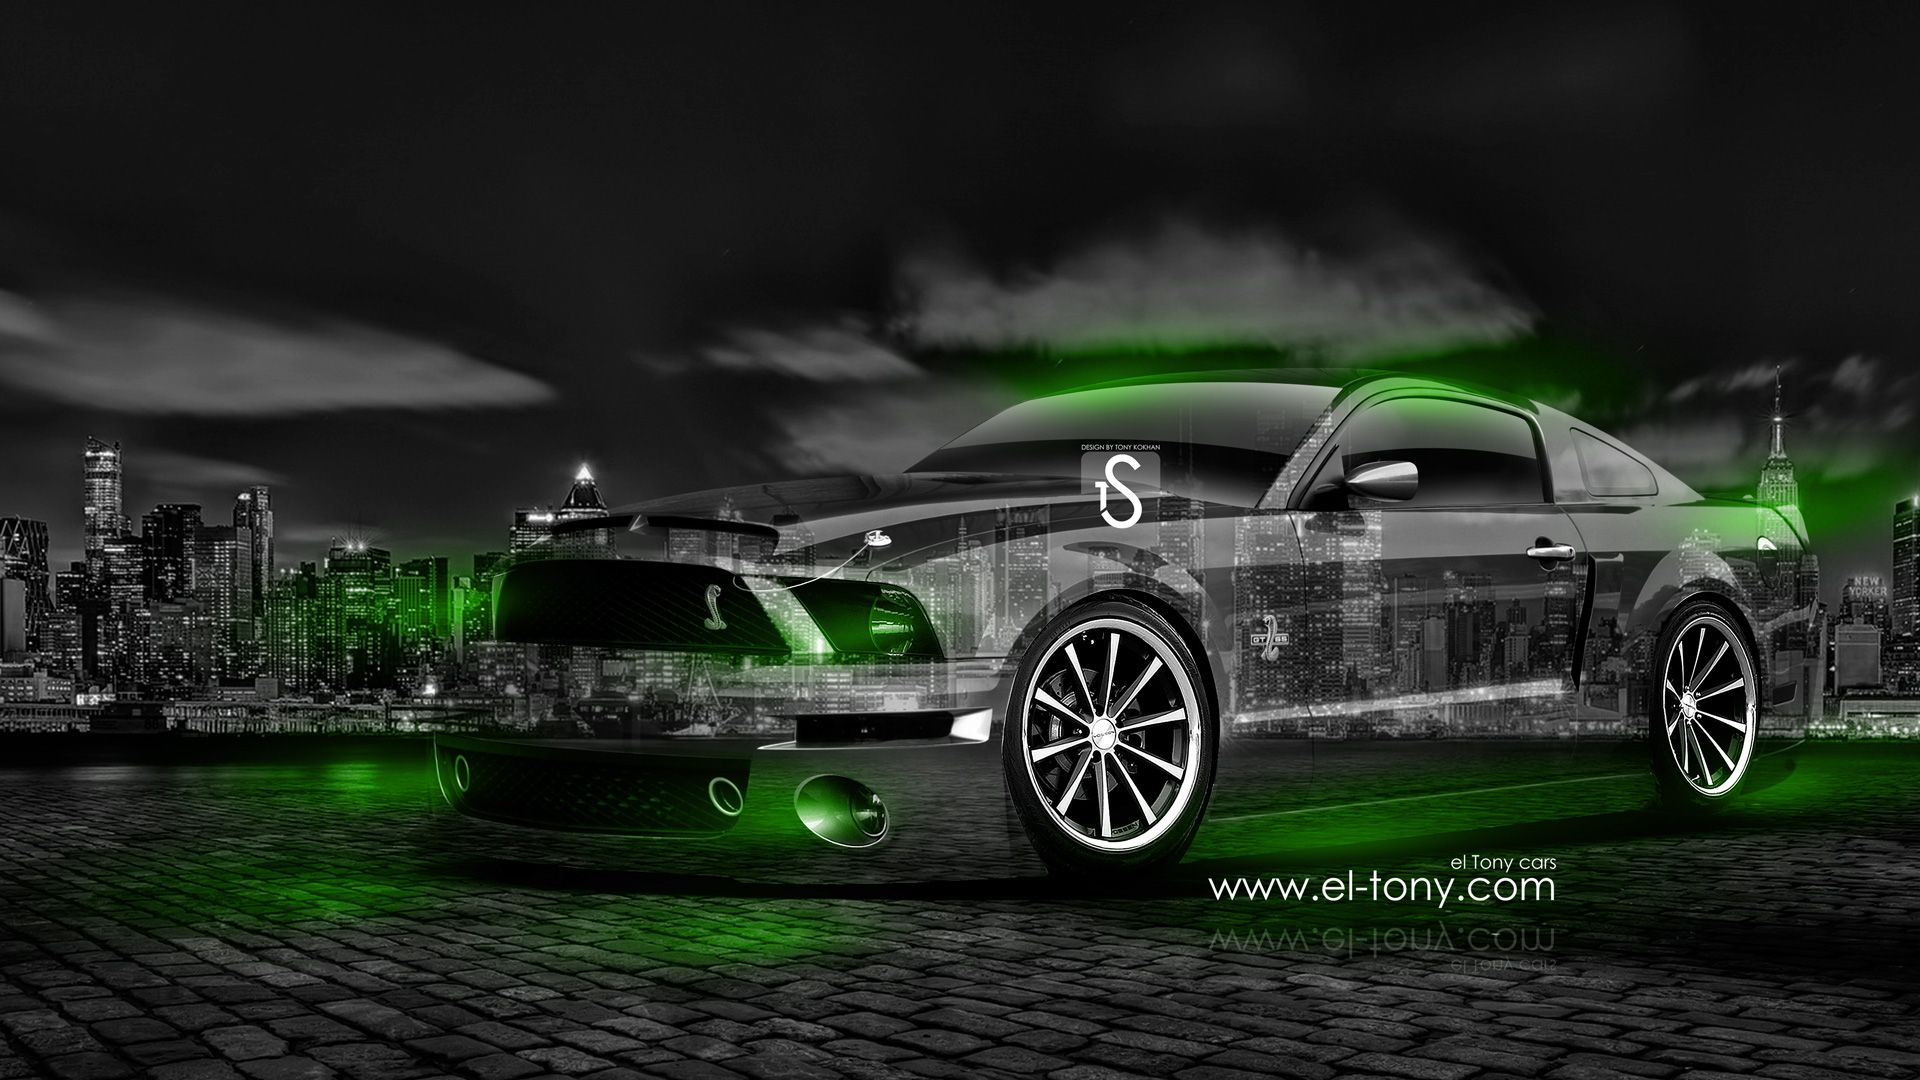 Lovely Beau Explore Green Mustang, Bmw Cars, And More!